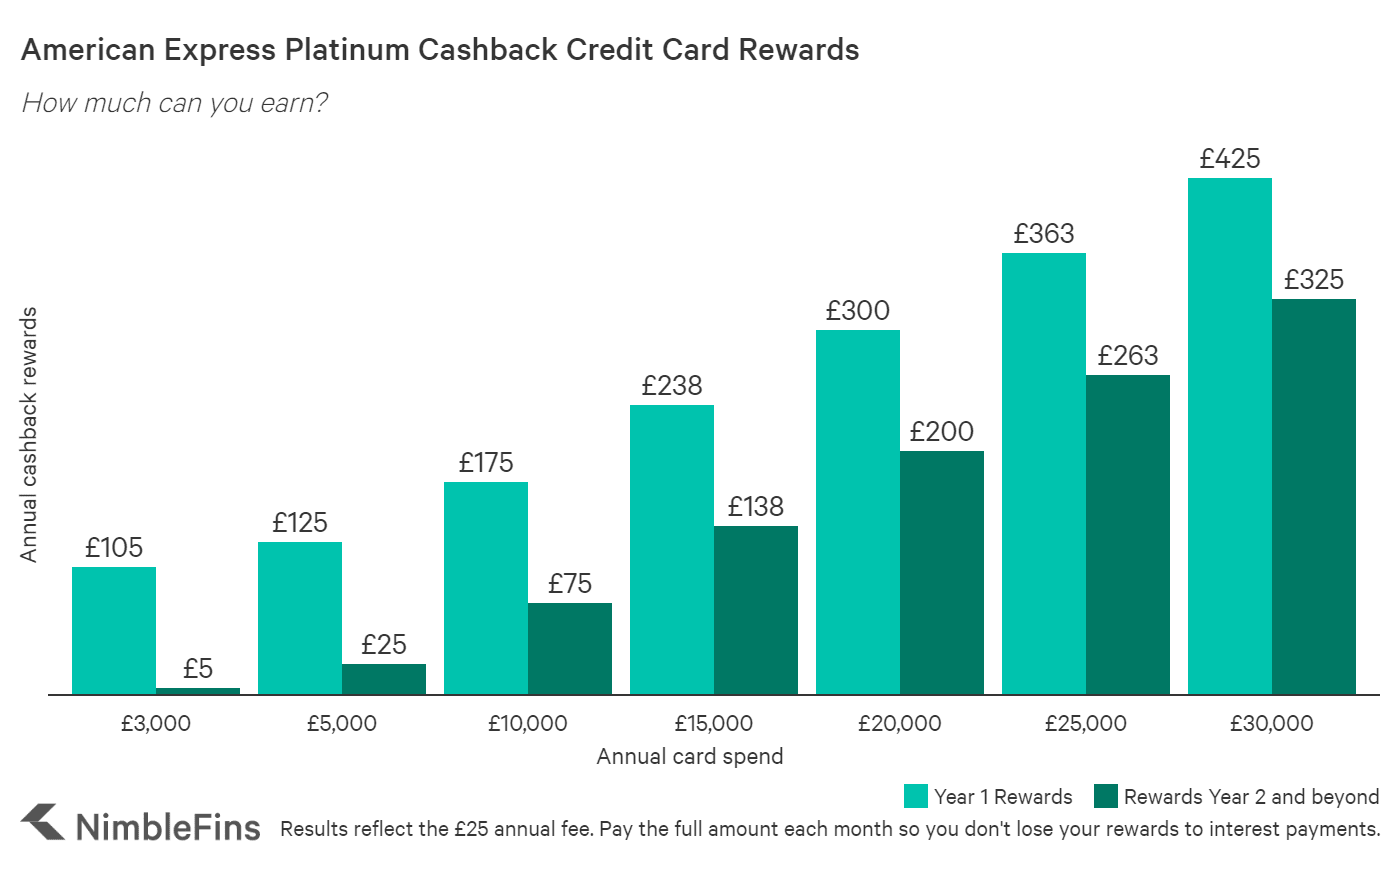 A chart showing the estimated cashback rewards over 2 years for the American Express Platinum Cashback credit card.